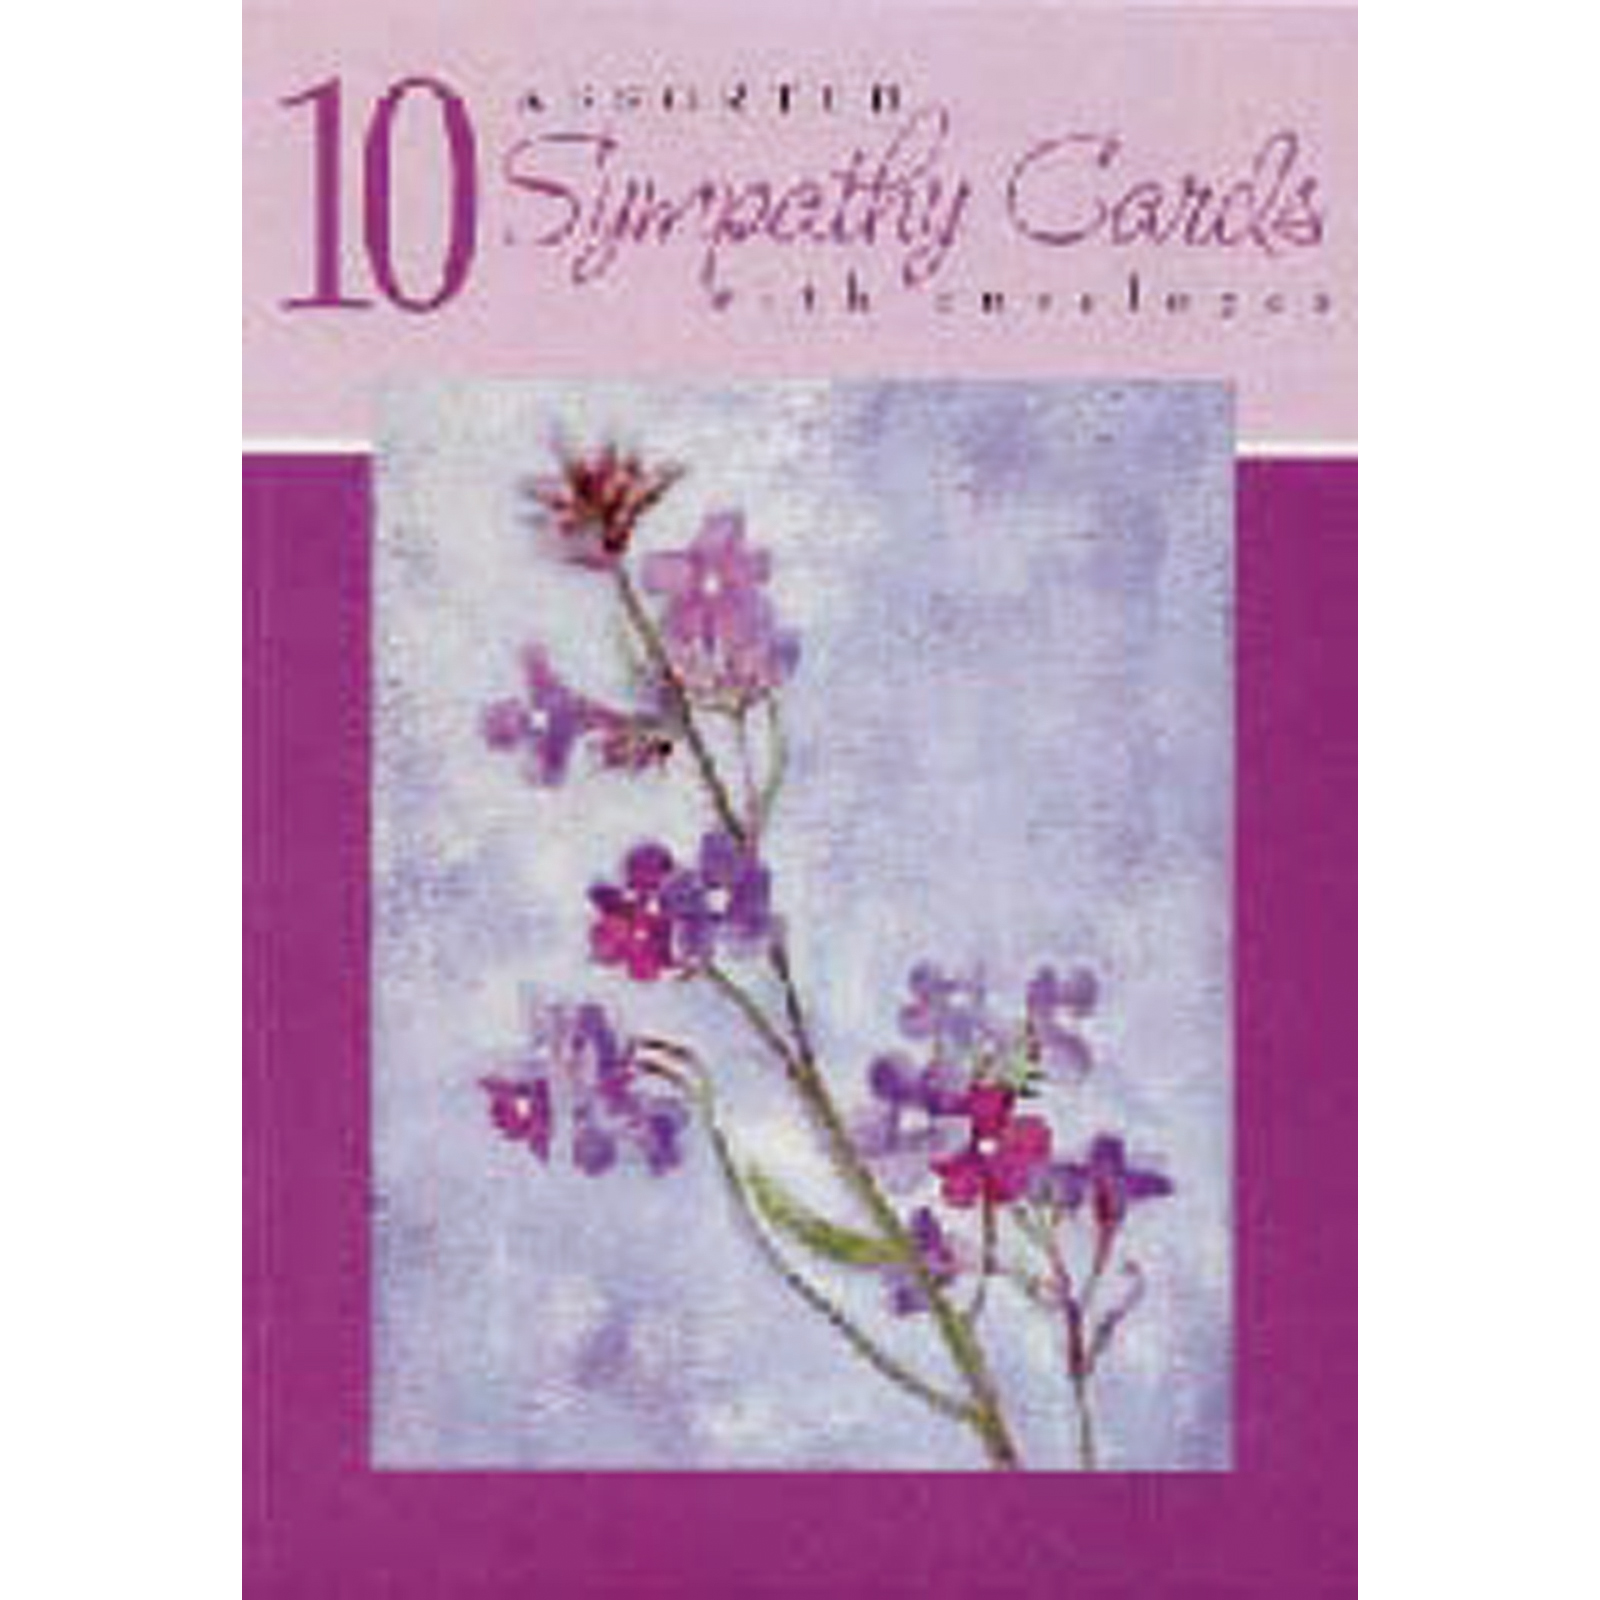 Boxed Greeting Cards - All Occasions, Sympathy Asst, 10 Ct -1 Box